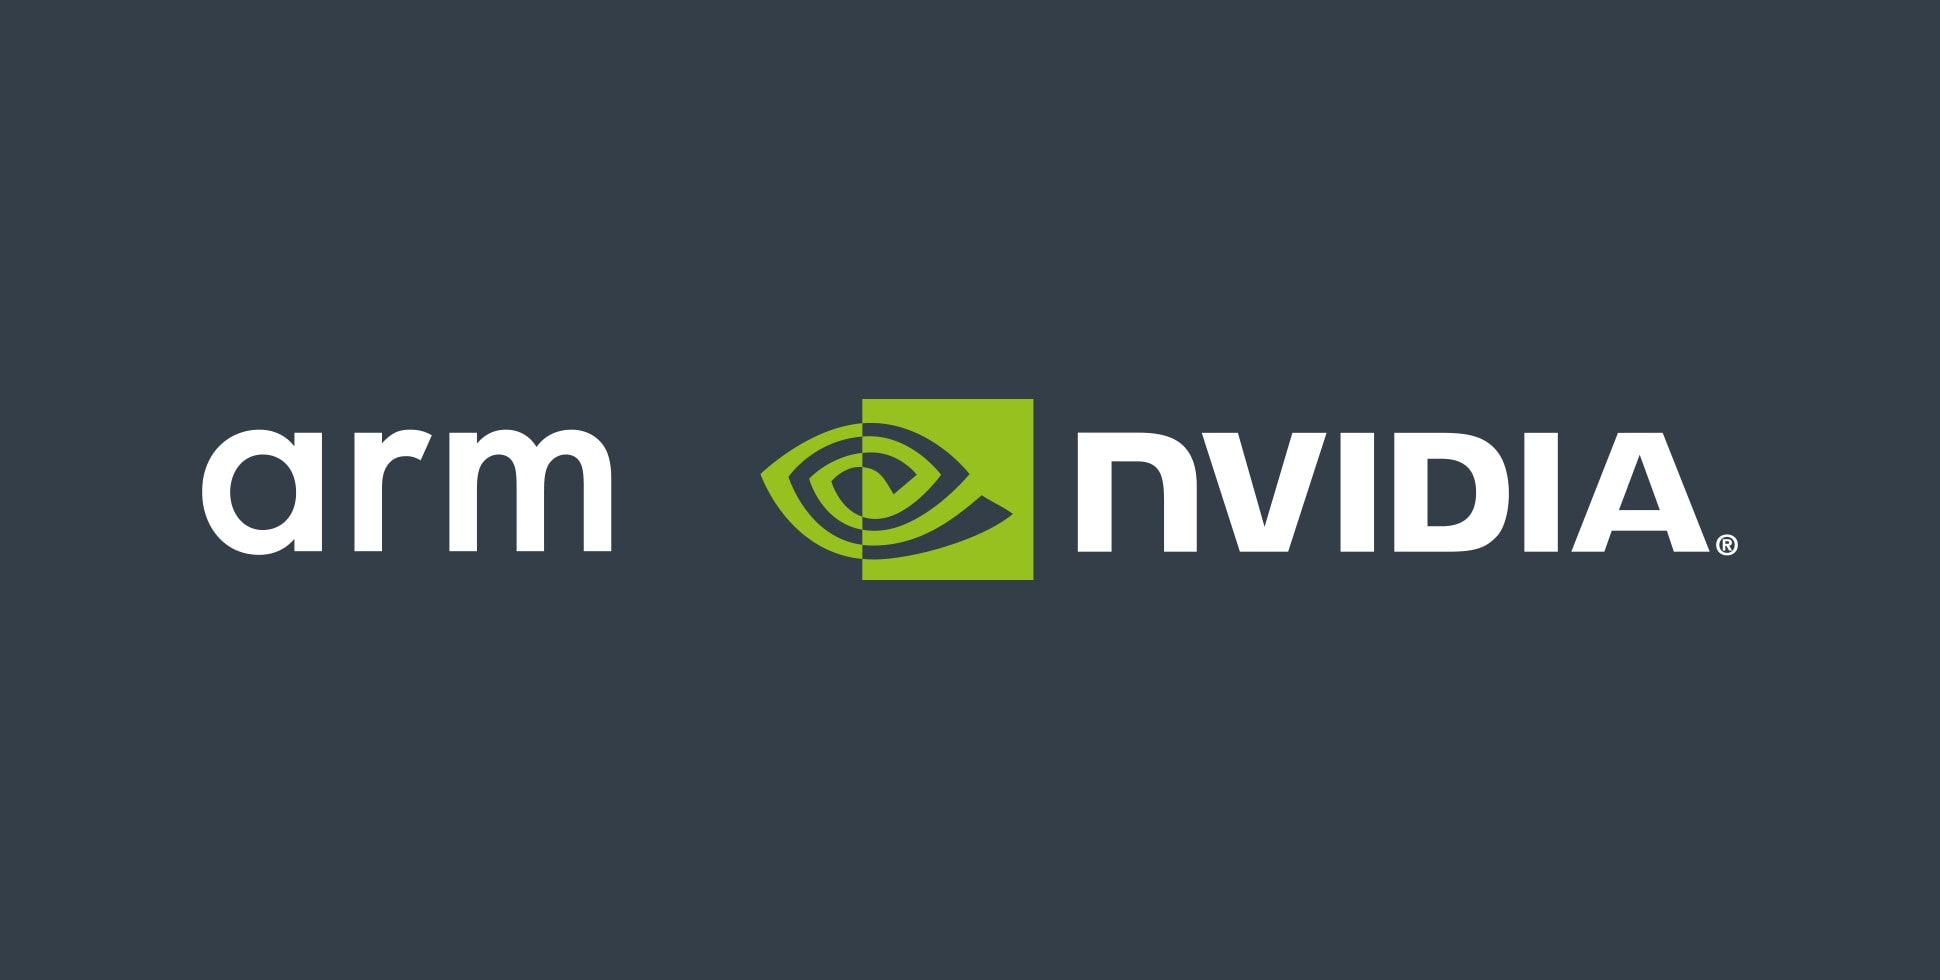 The Arm NVIDIA Deal Is Good for Everyone. Here's Why